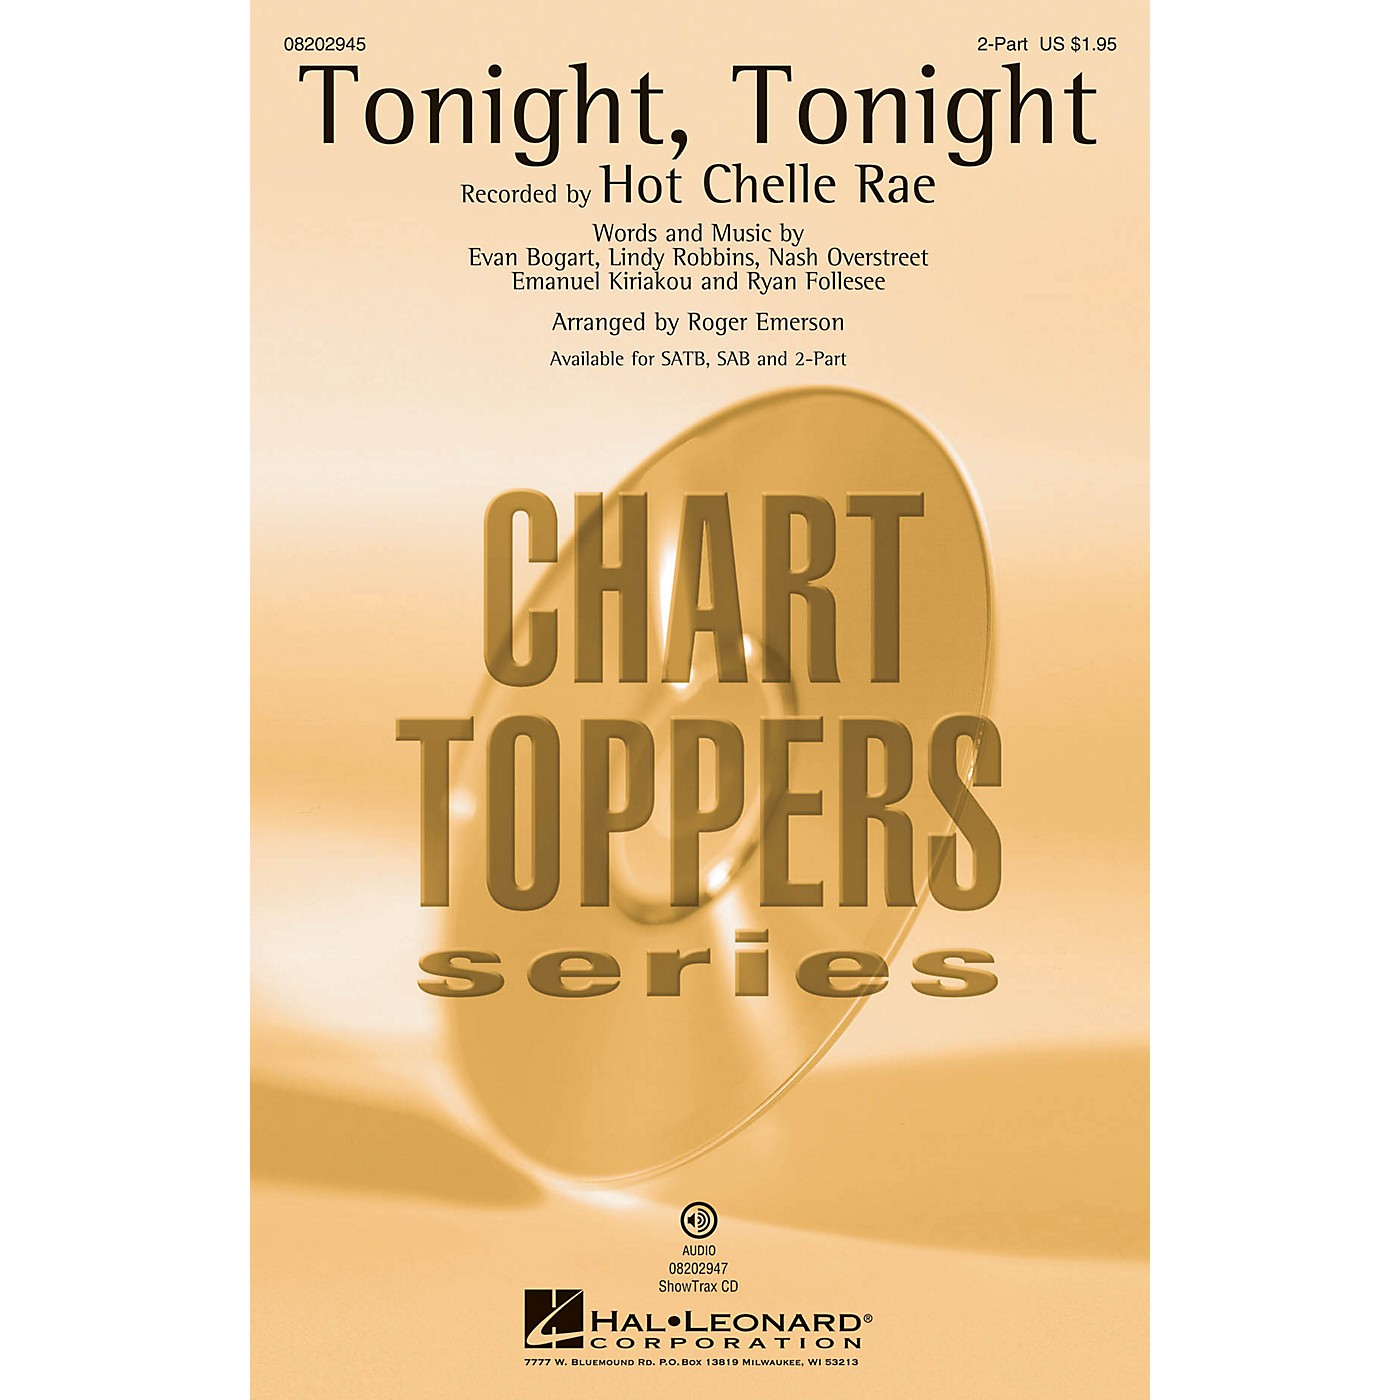 Hal Leonard Tonight, Tonight 2-Part by Hot Chelle Rae arranged by Roger Emerson thumbnail